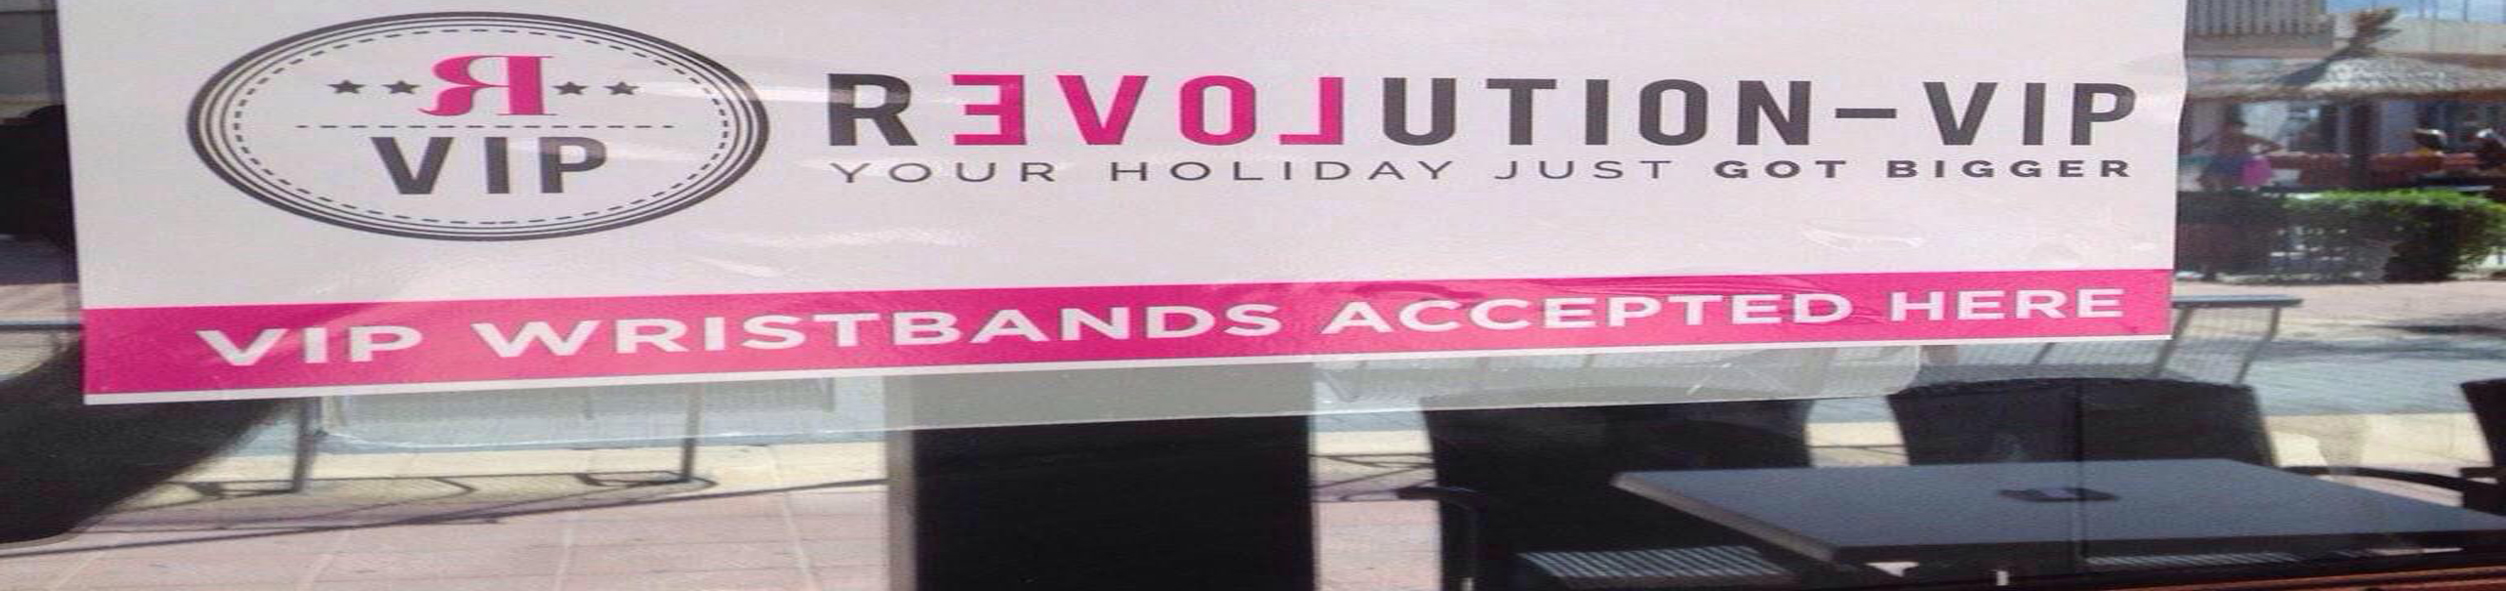 Revolution VIP sign in window